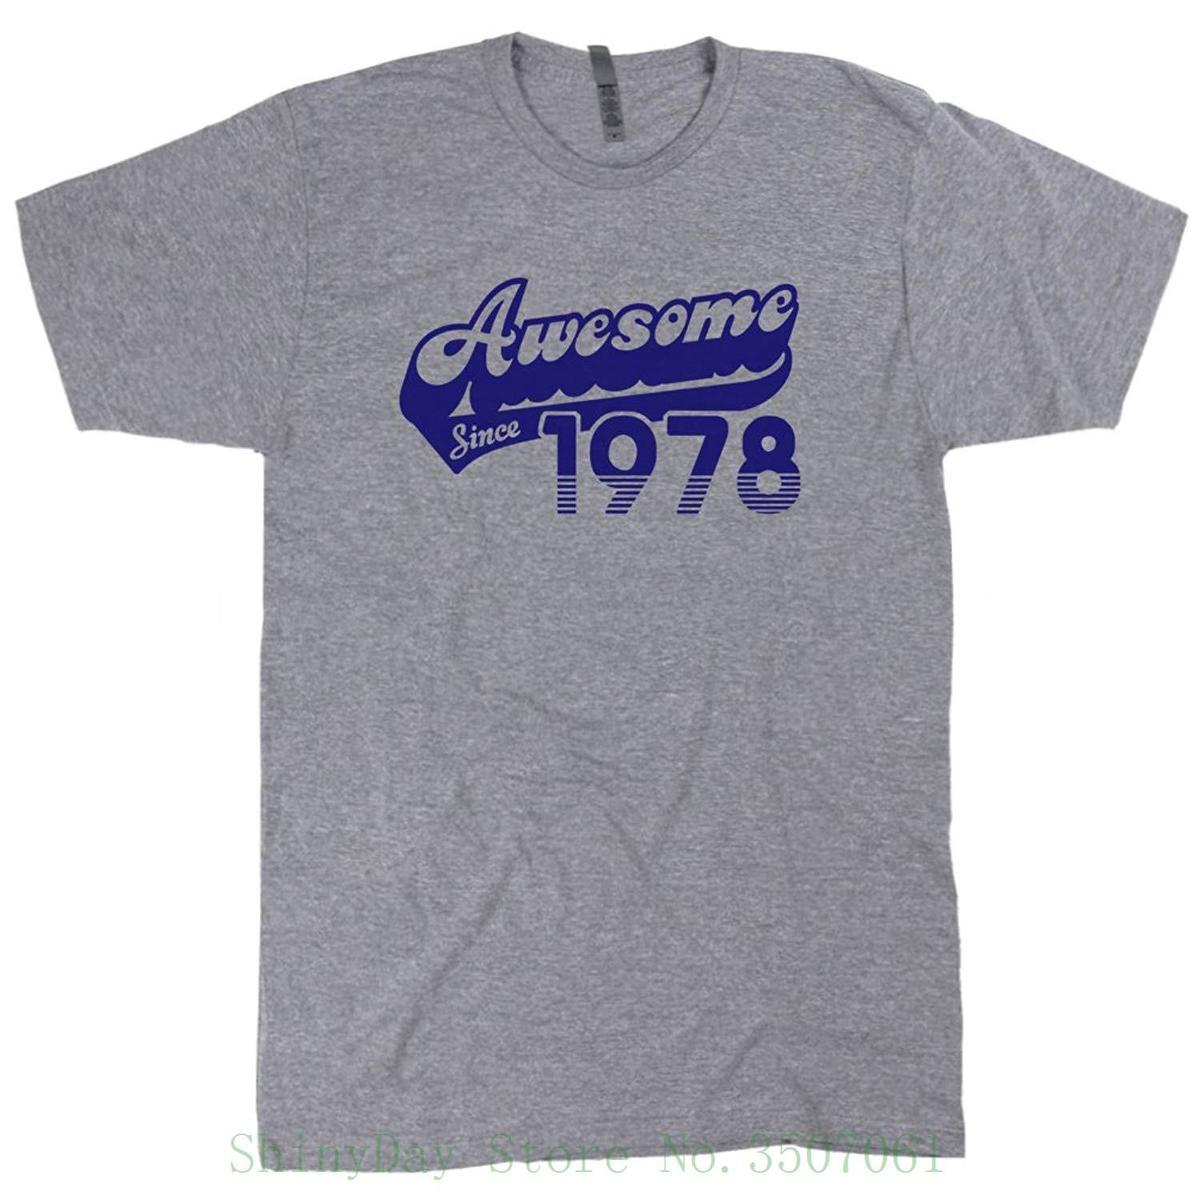 Awesome Since 1978 T Shirt 40th Birthday Shirts Gift For Vintage Tshirt Born In Made Tee Hipster Sale Designable